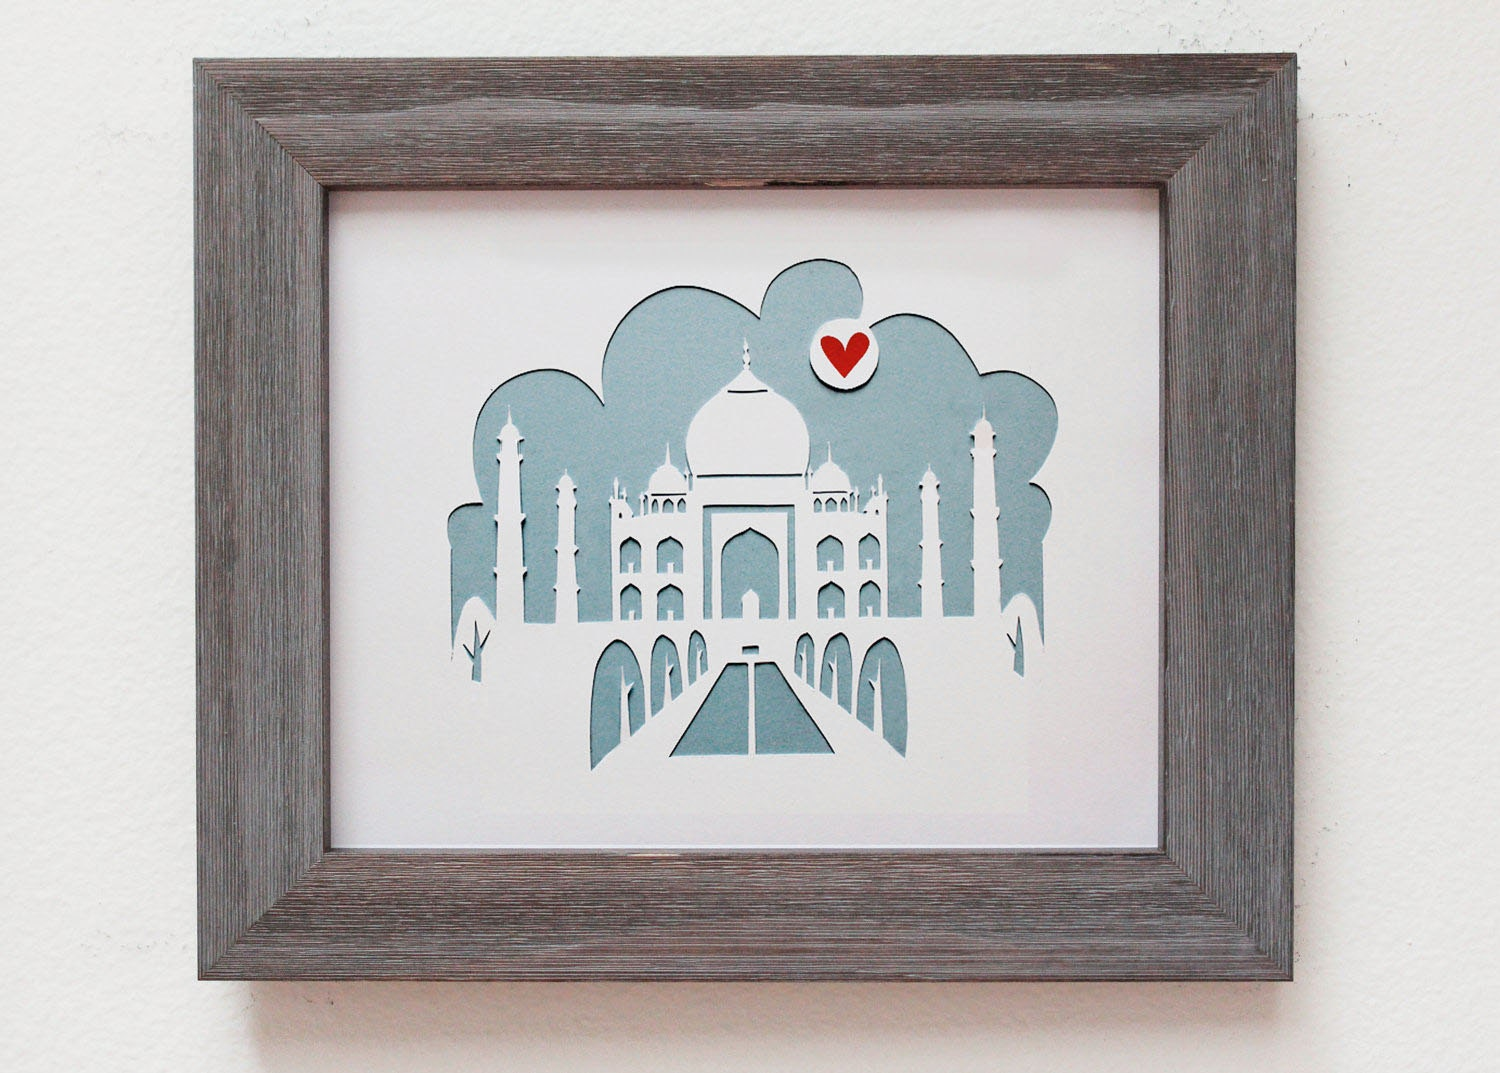 Taj Mahal India Personalized Gift Or Wedding Gift Etsy